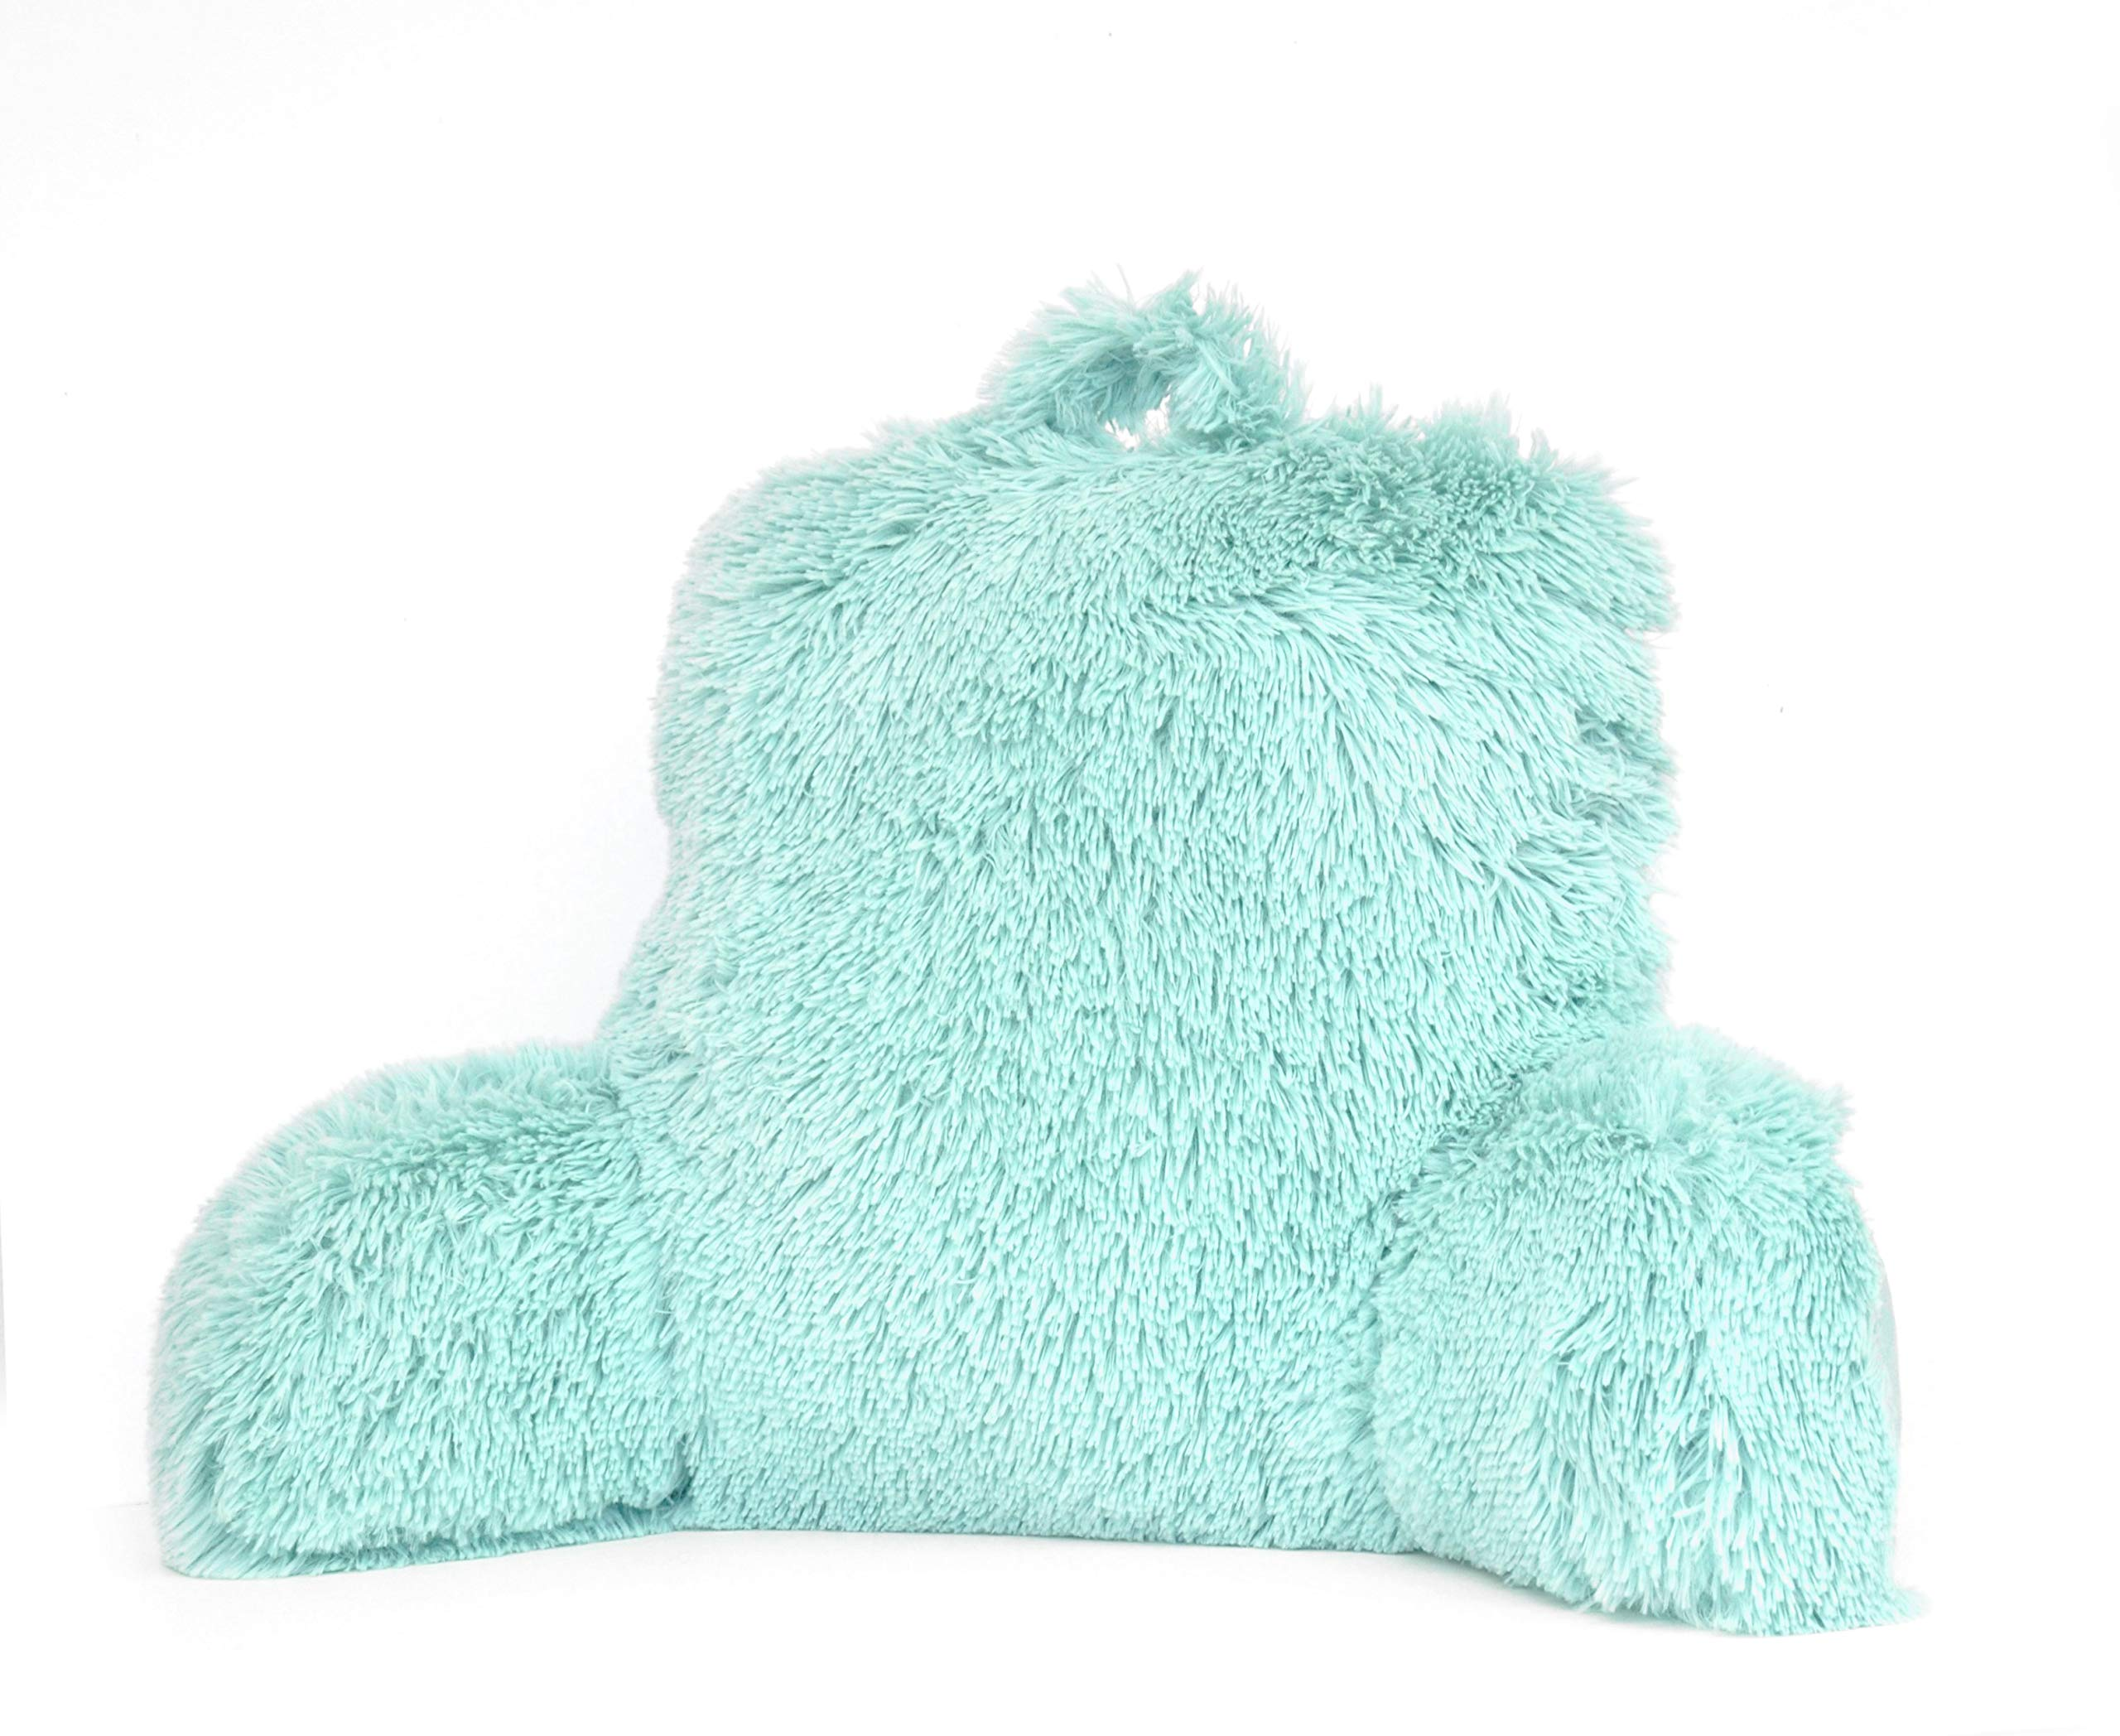 Mainstay Long Hair Faux Fur Backrest Pillow, Mint